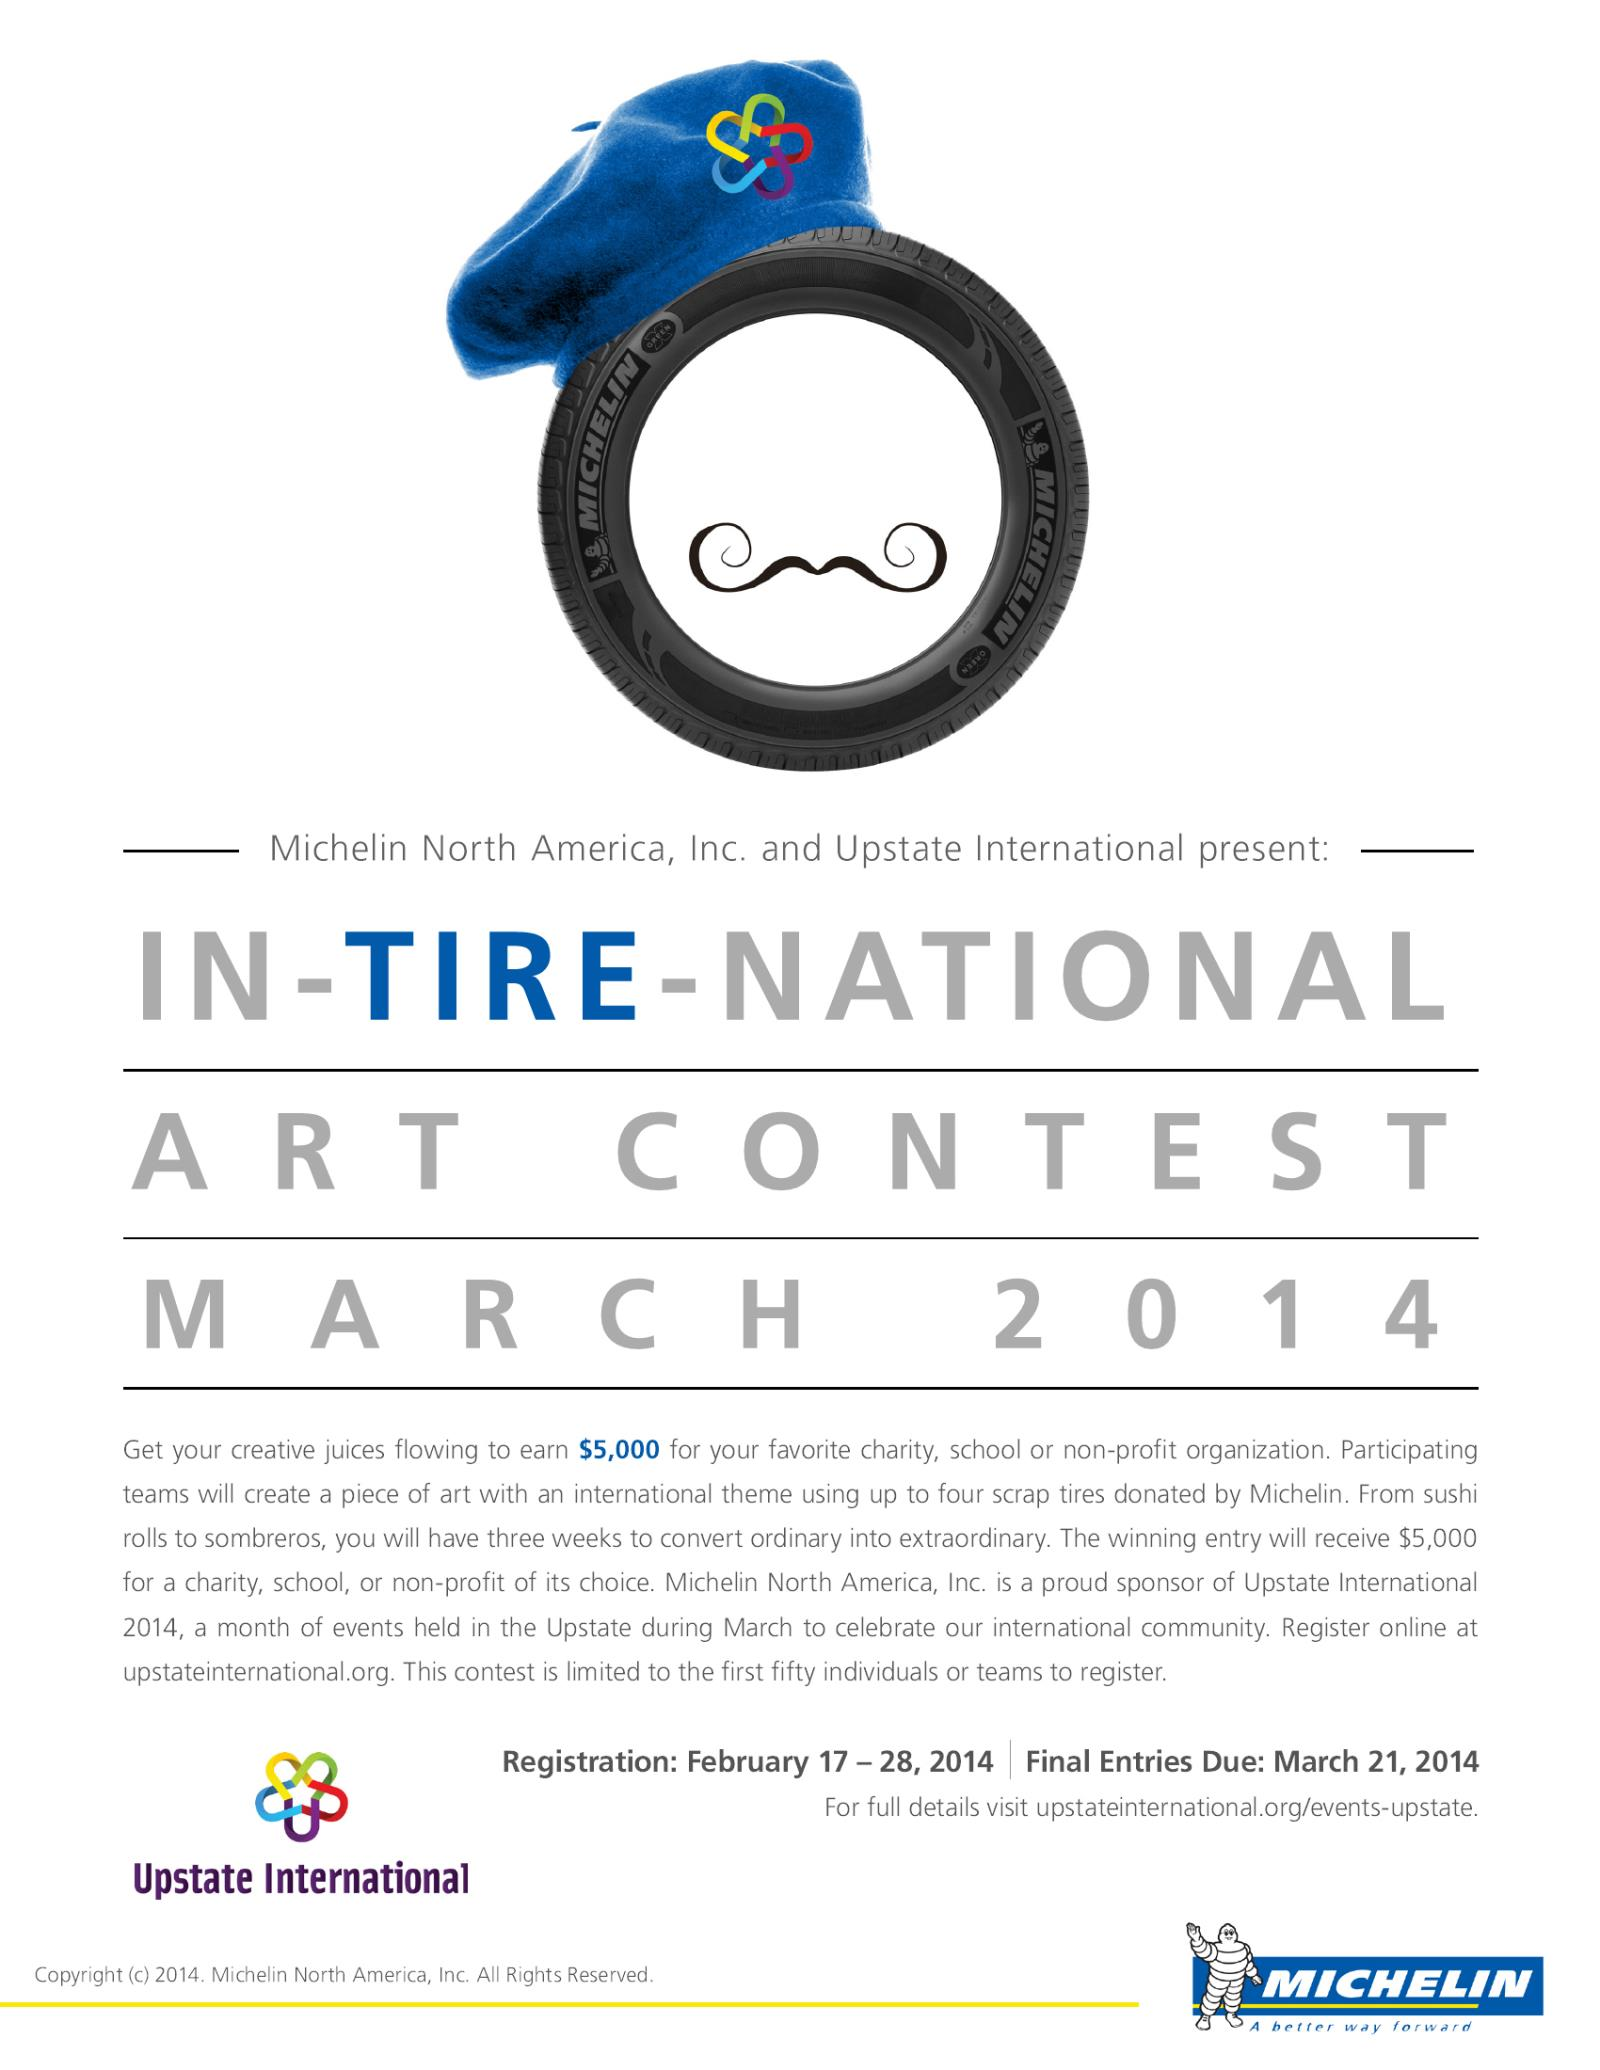 InTireNational Art Contest graphic